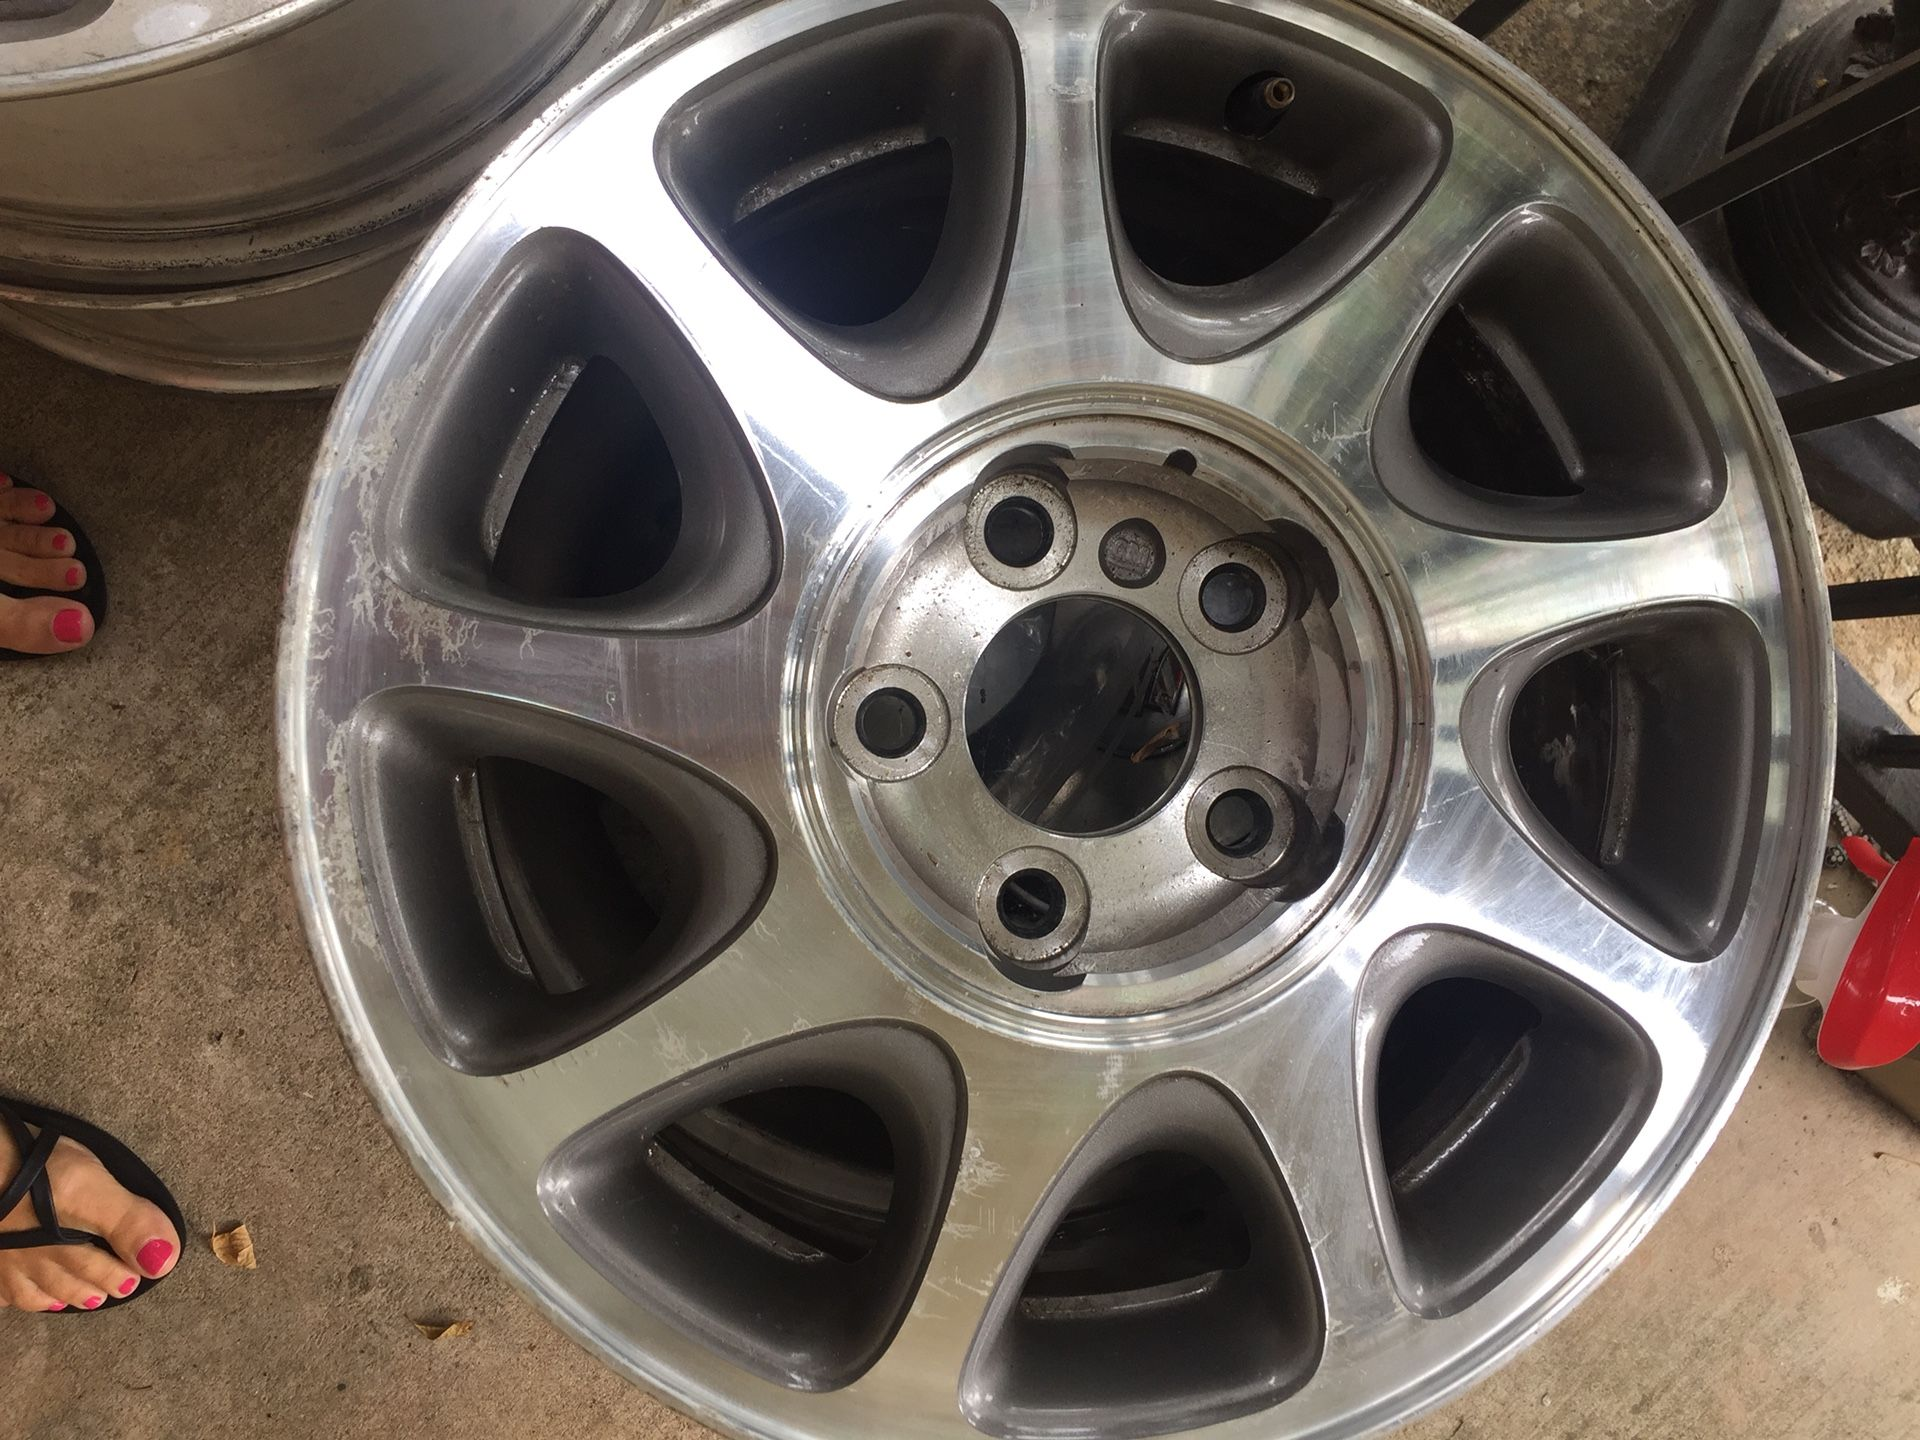 All 4 Buick Regal 1997-2004 Used OEM Wheel 16x6.5 factory rims and wheel cover caps